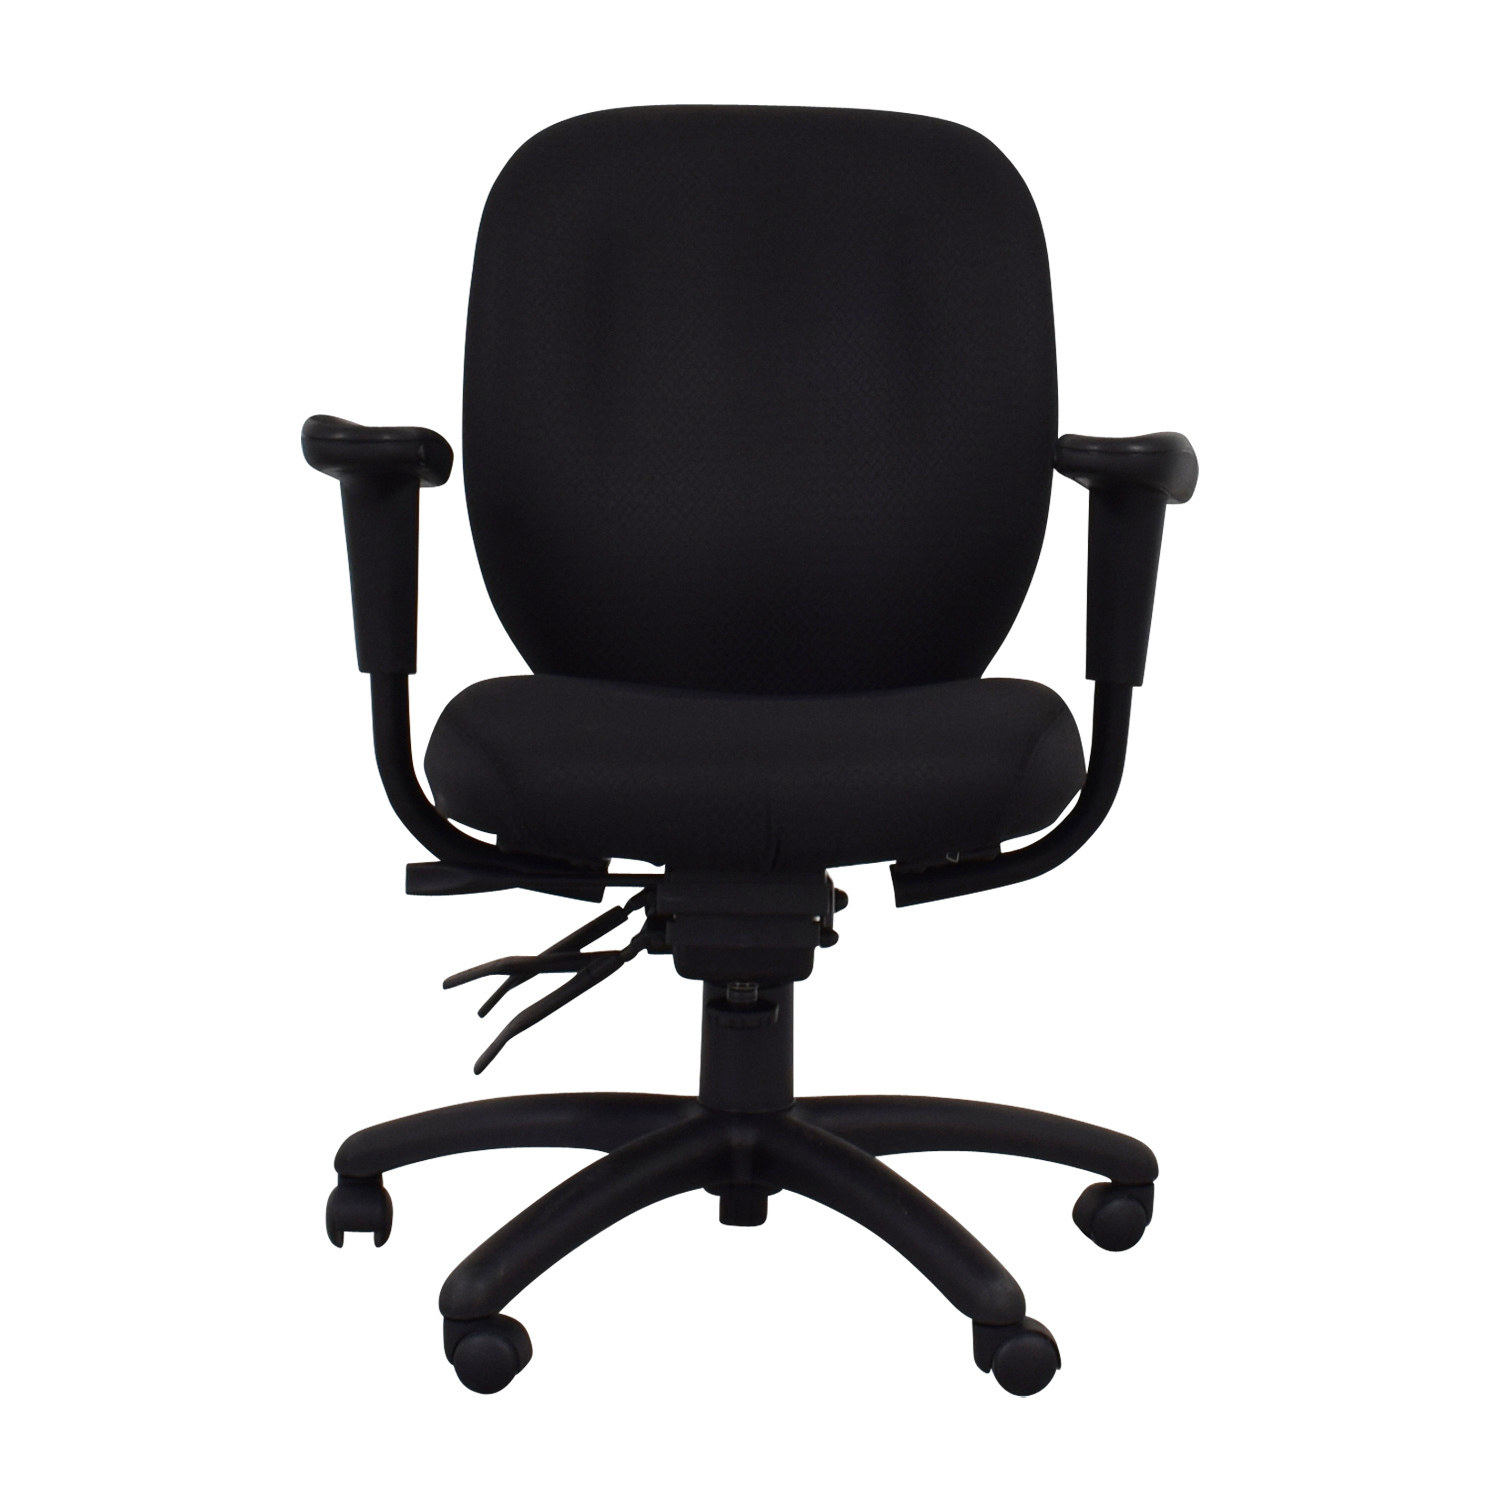 Office To Go Office To Go Black Quilt Office Chair second hand